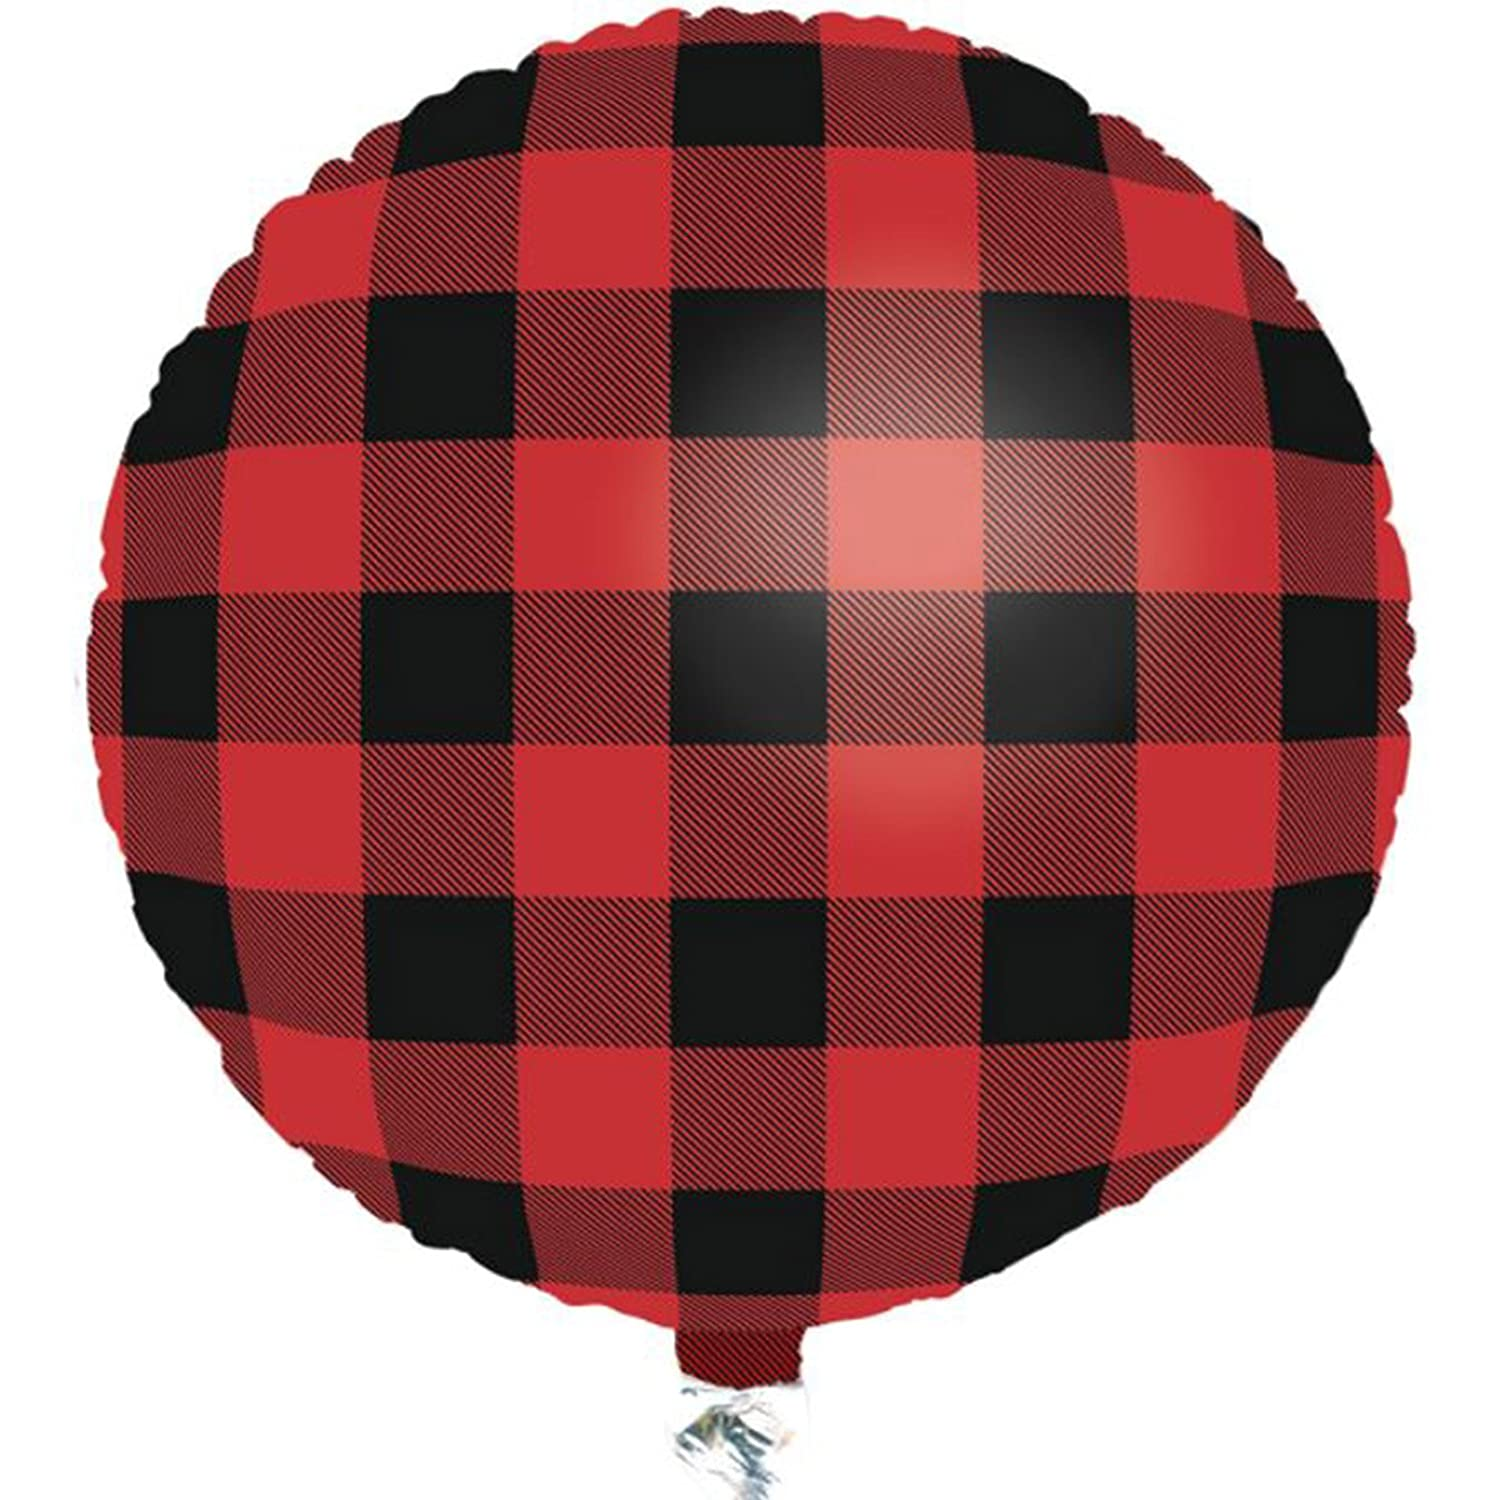 Buffalo Plaid Balloon (18 Round Foil Mylar Balloon) Buffalo Plaid Party Collection by Havercamp